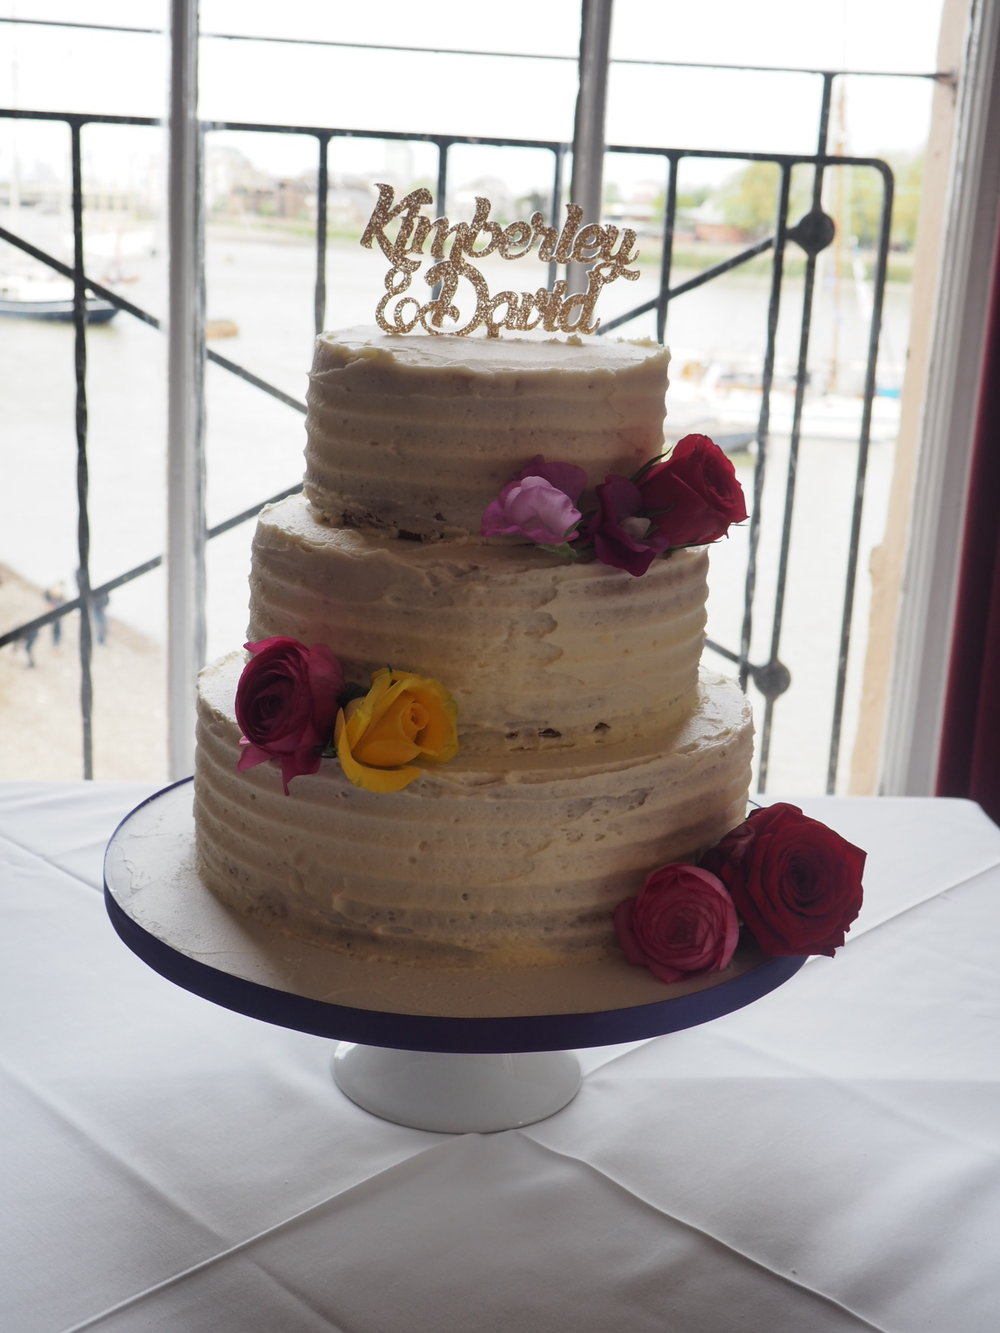 Trafalgar tavern greenwich wedding cake flower